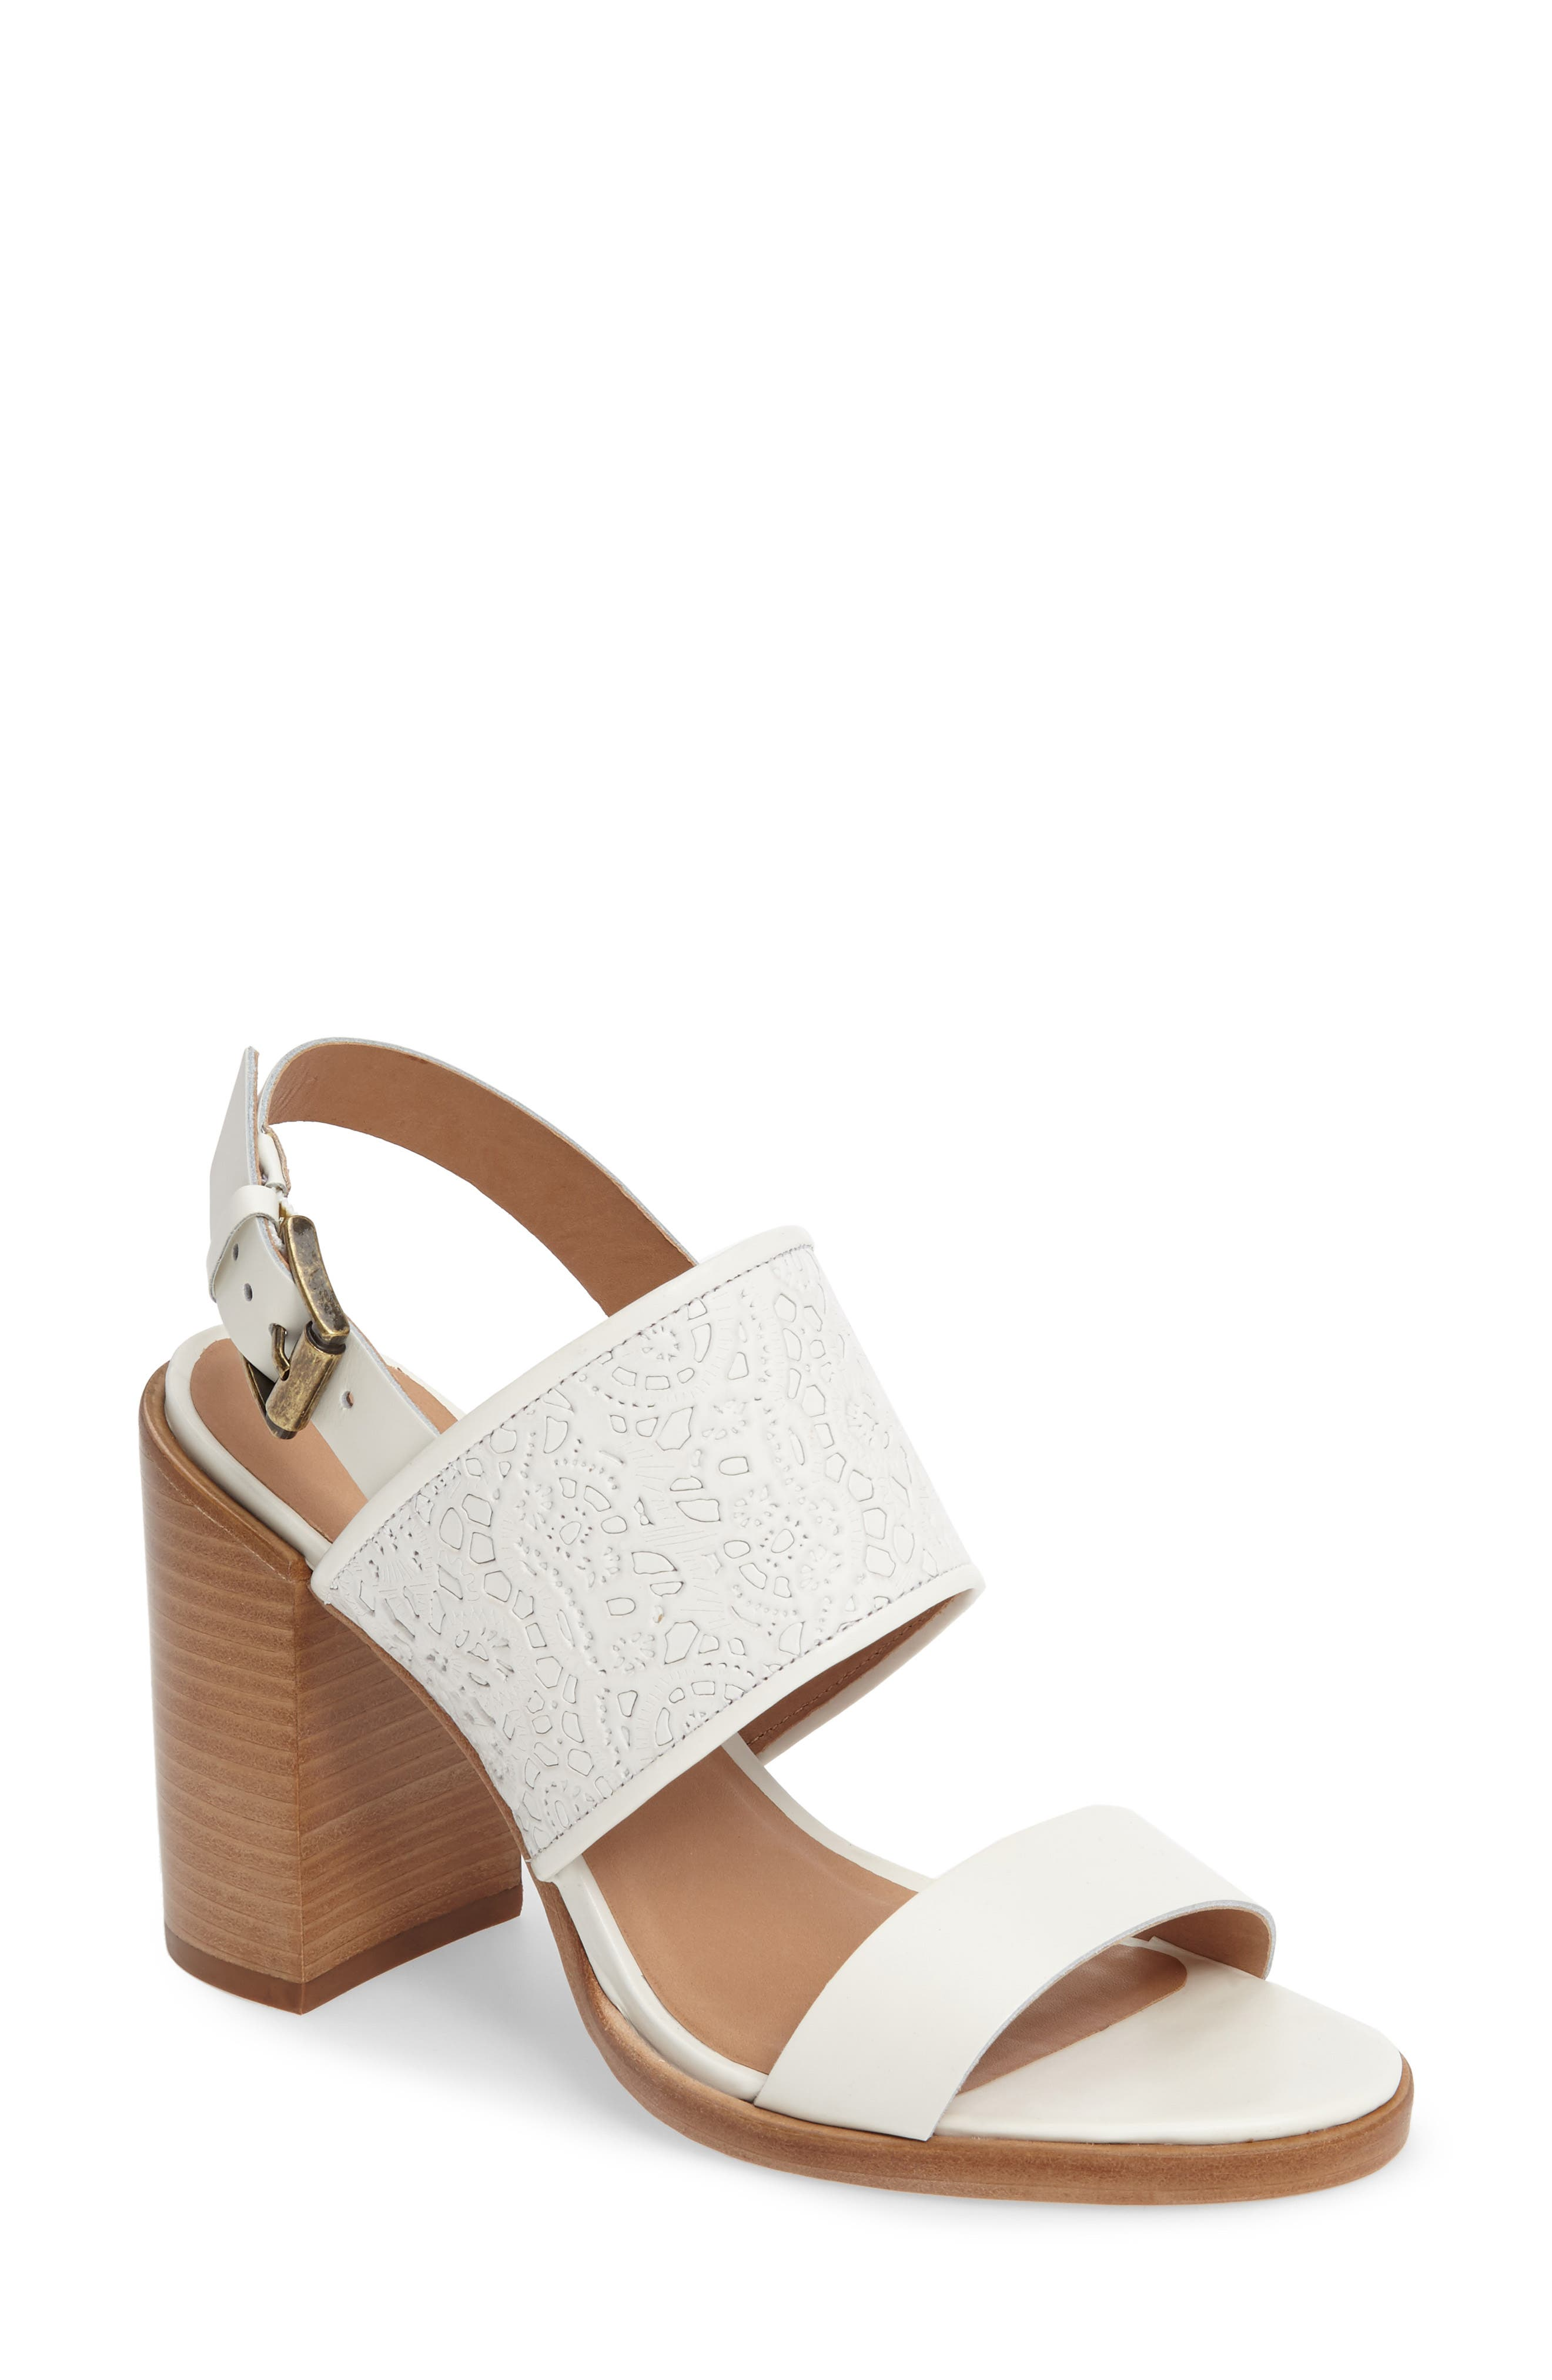 Alternate Image 1 Selected - Klub Nico Tilda Sandal (Women)